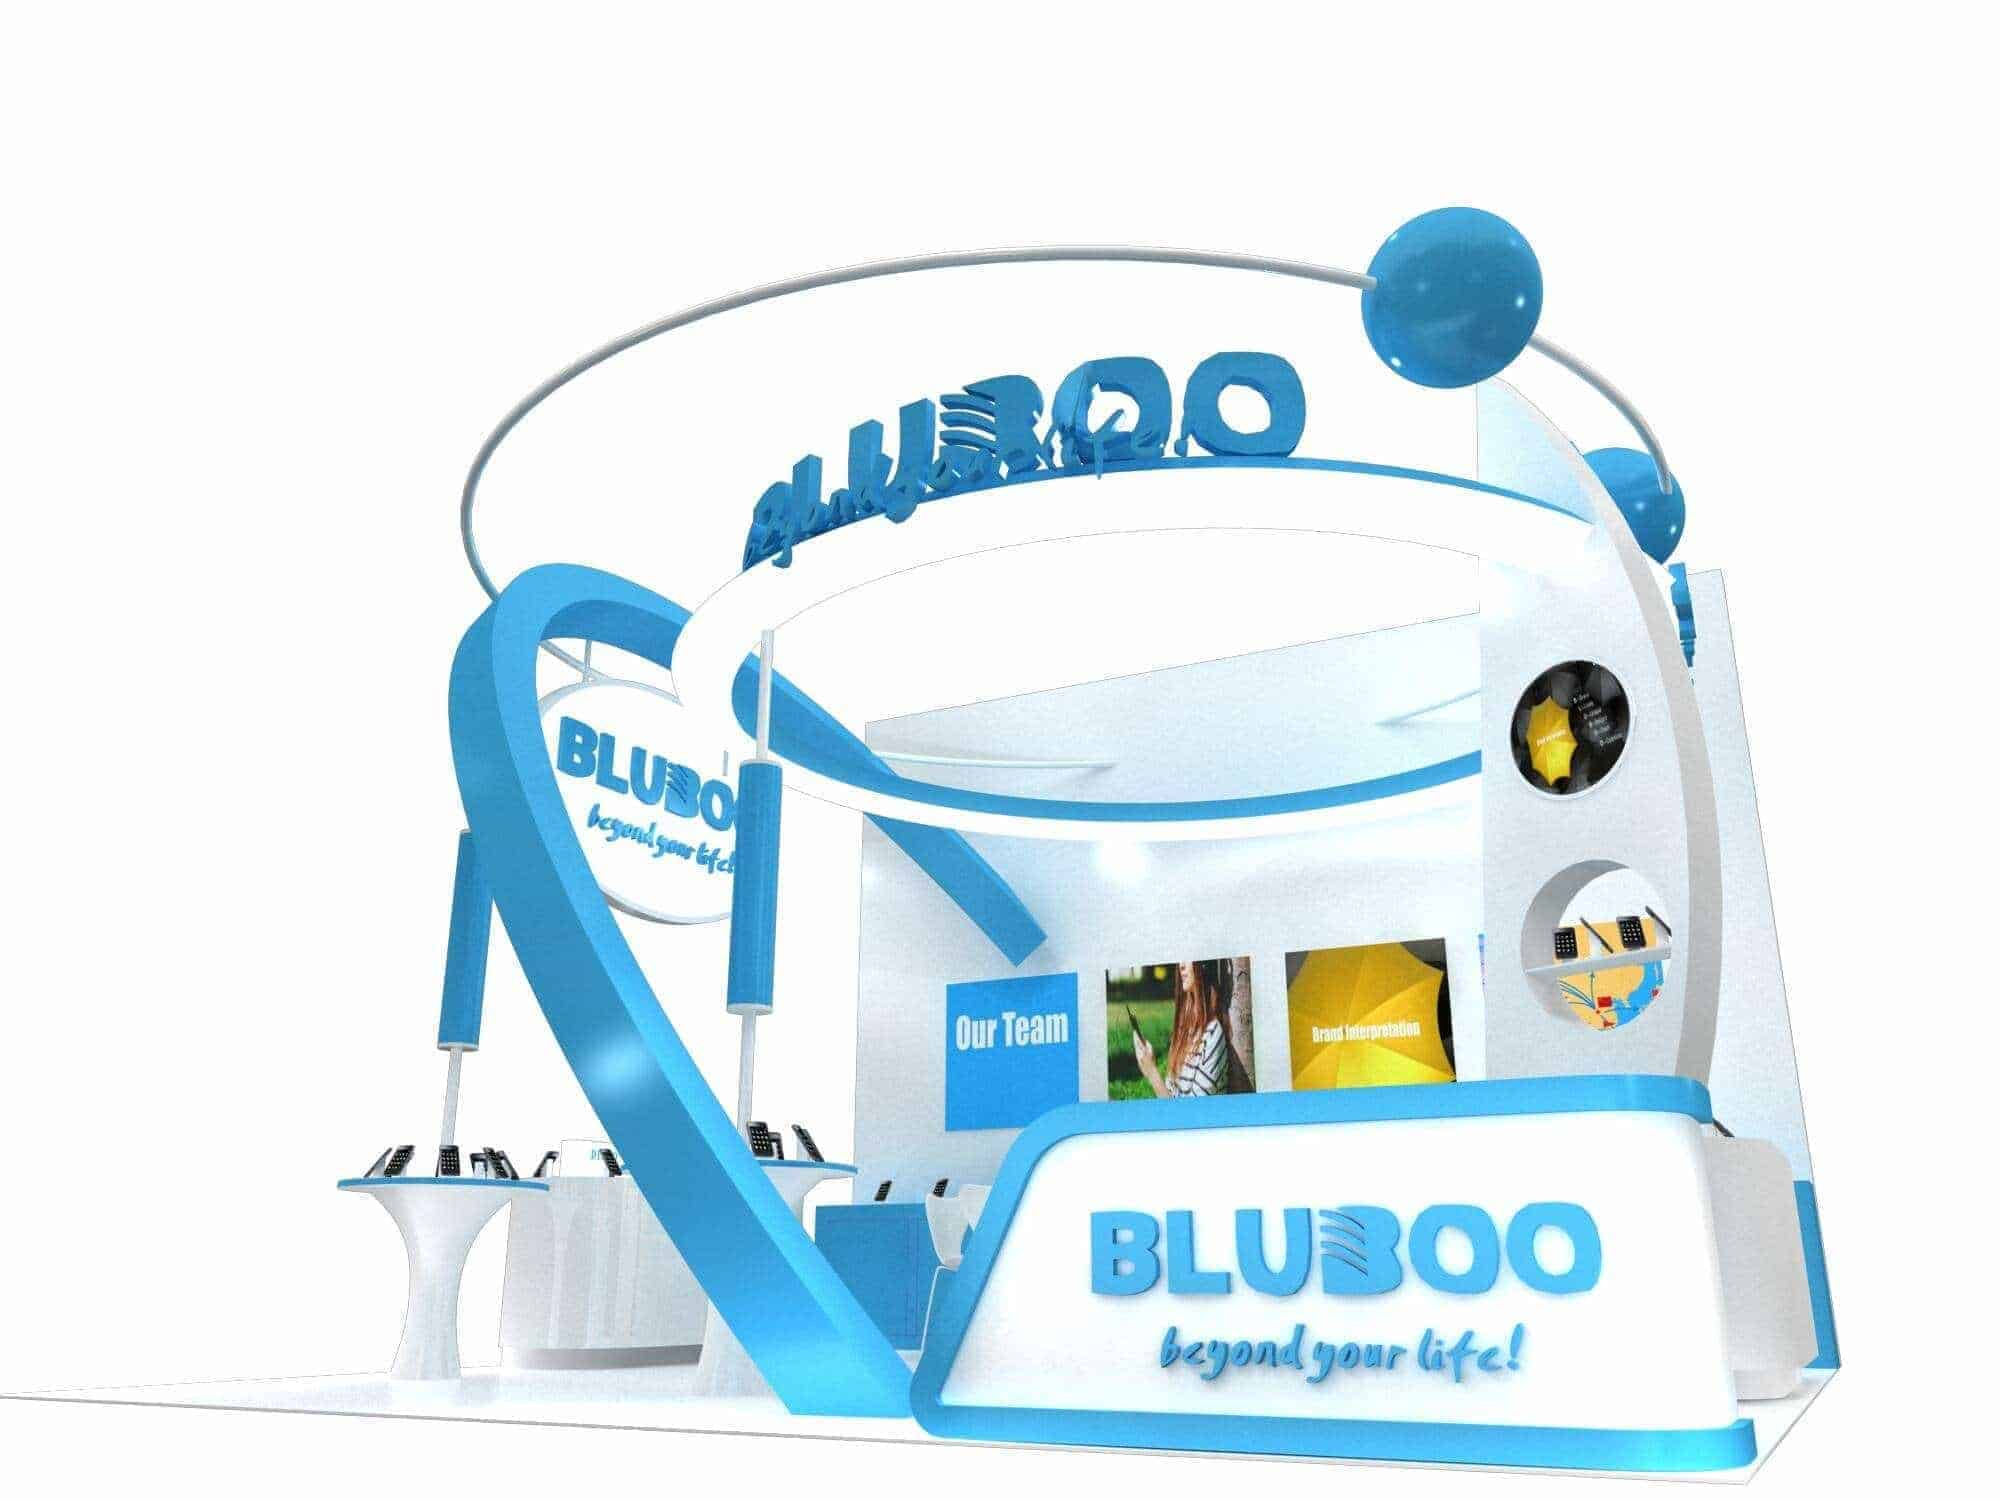 Bluboo Stand at HK Global Sources Mobile Electronics Exhibition